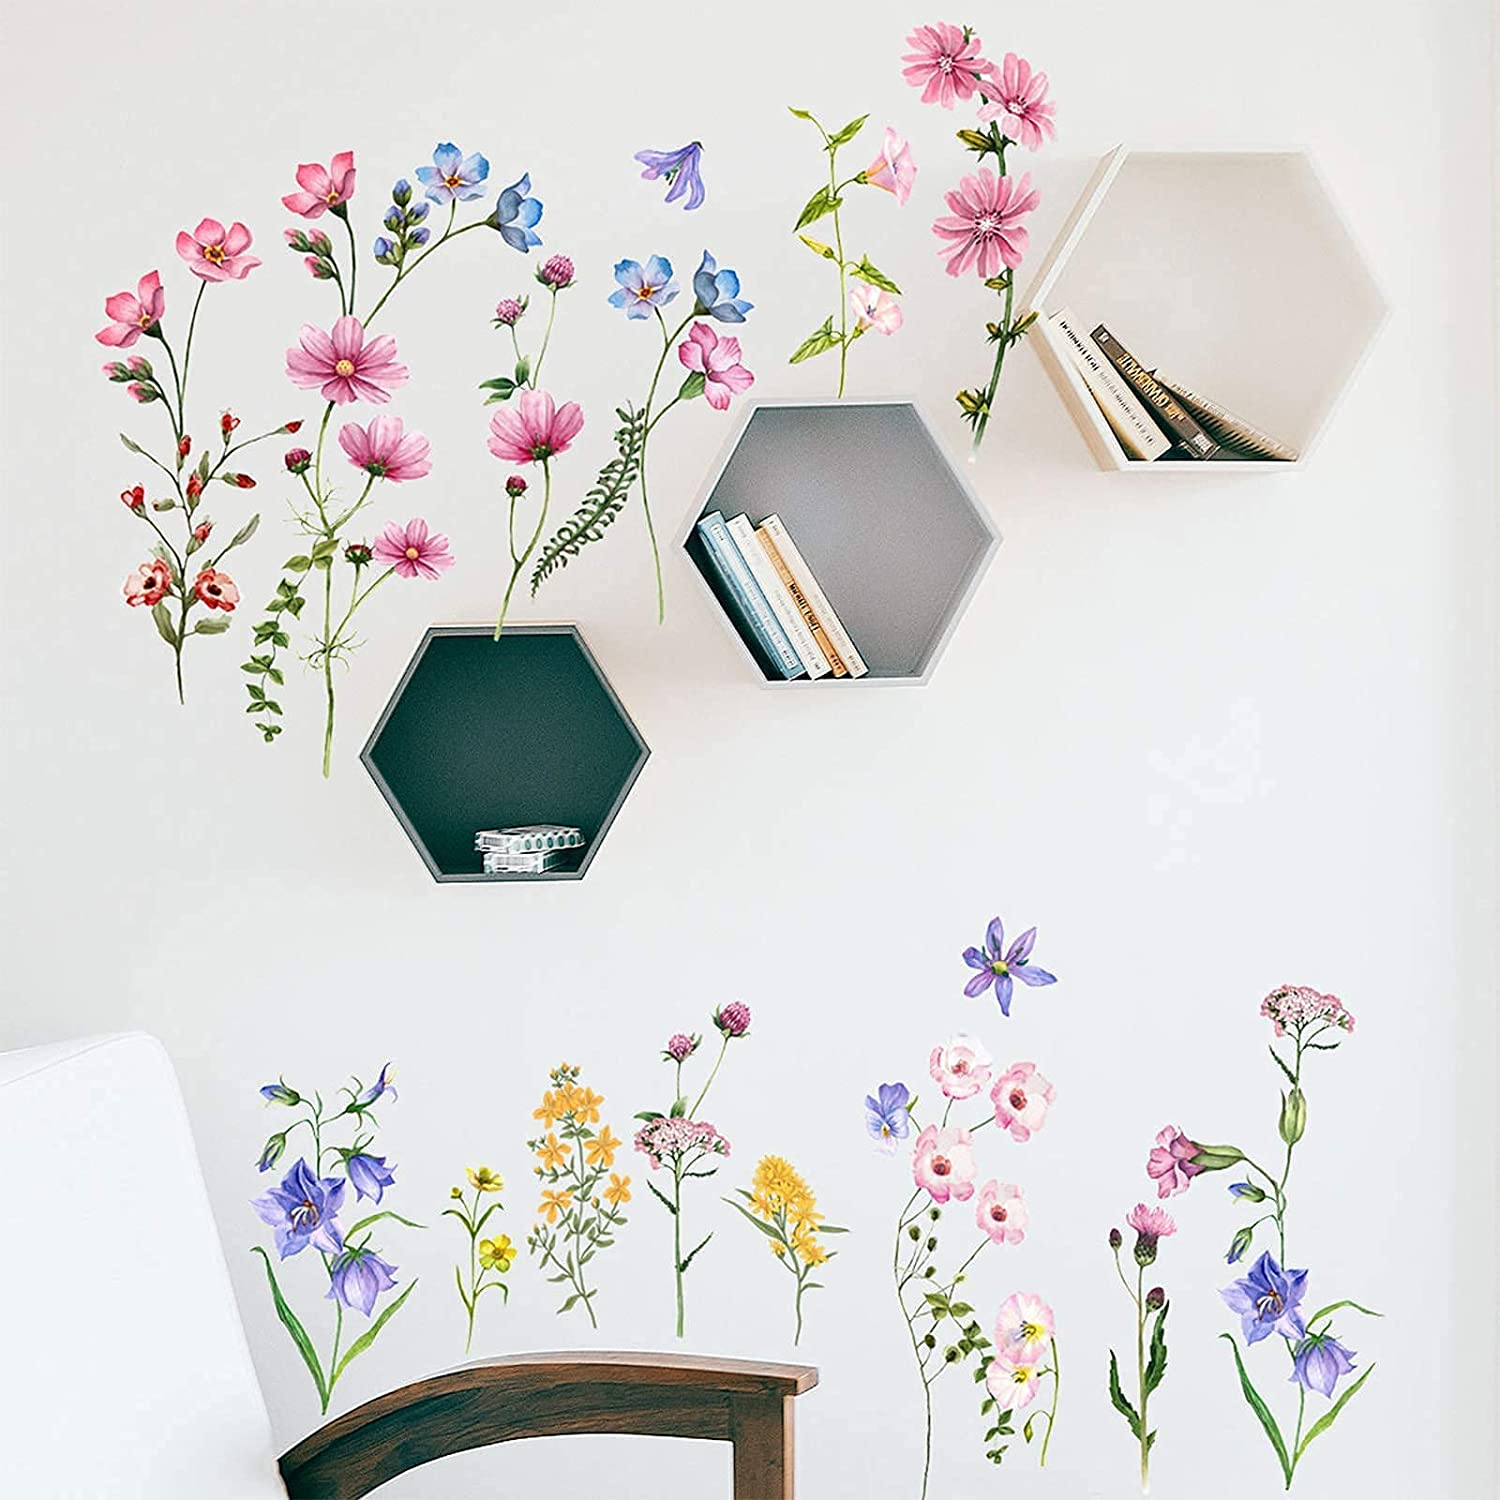 Spring Garden Flower Wall Decals, DILIBRA Bright Spring Floral Wall Sticker, Removable Peel and Stick DIY Art Vinyl Wallpaper for Baby Nursery Girls Bedroom Classroom Wall Decor (flower1)